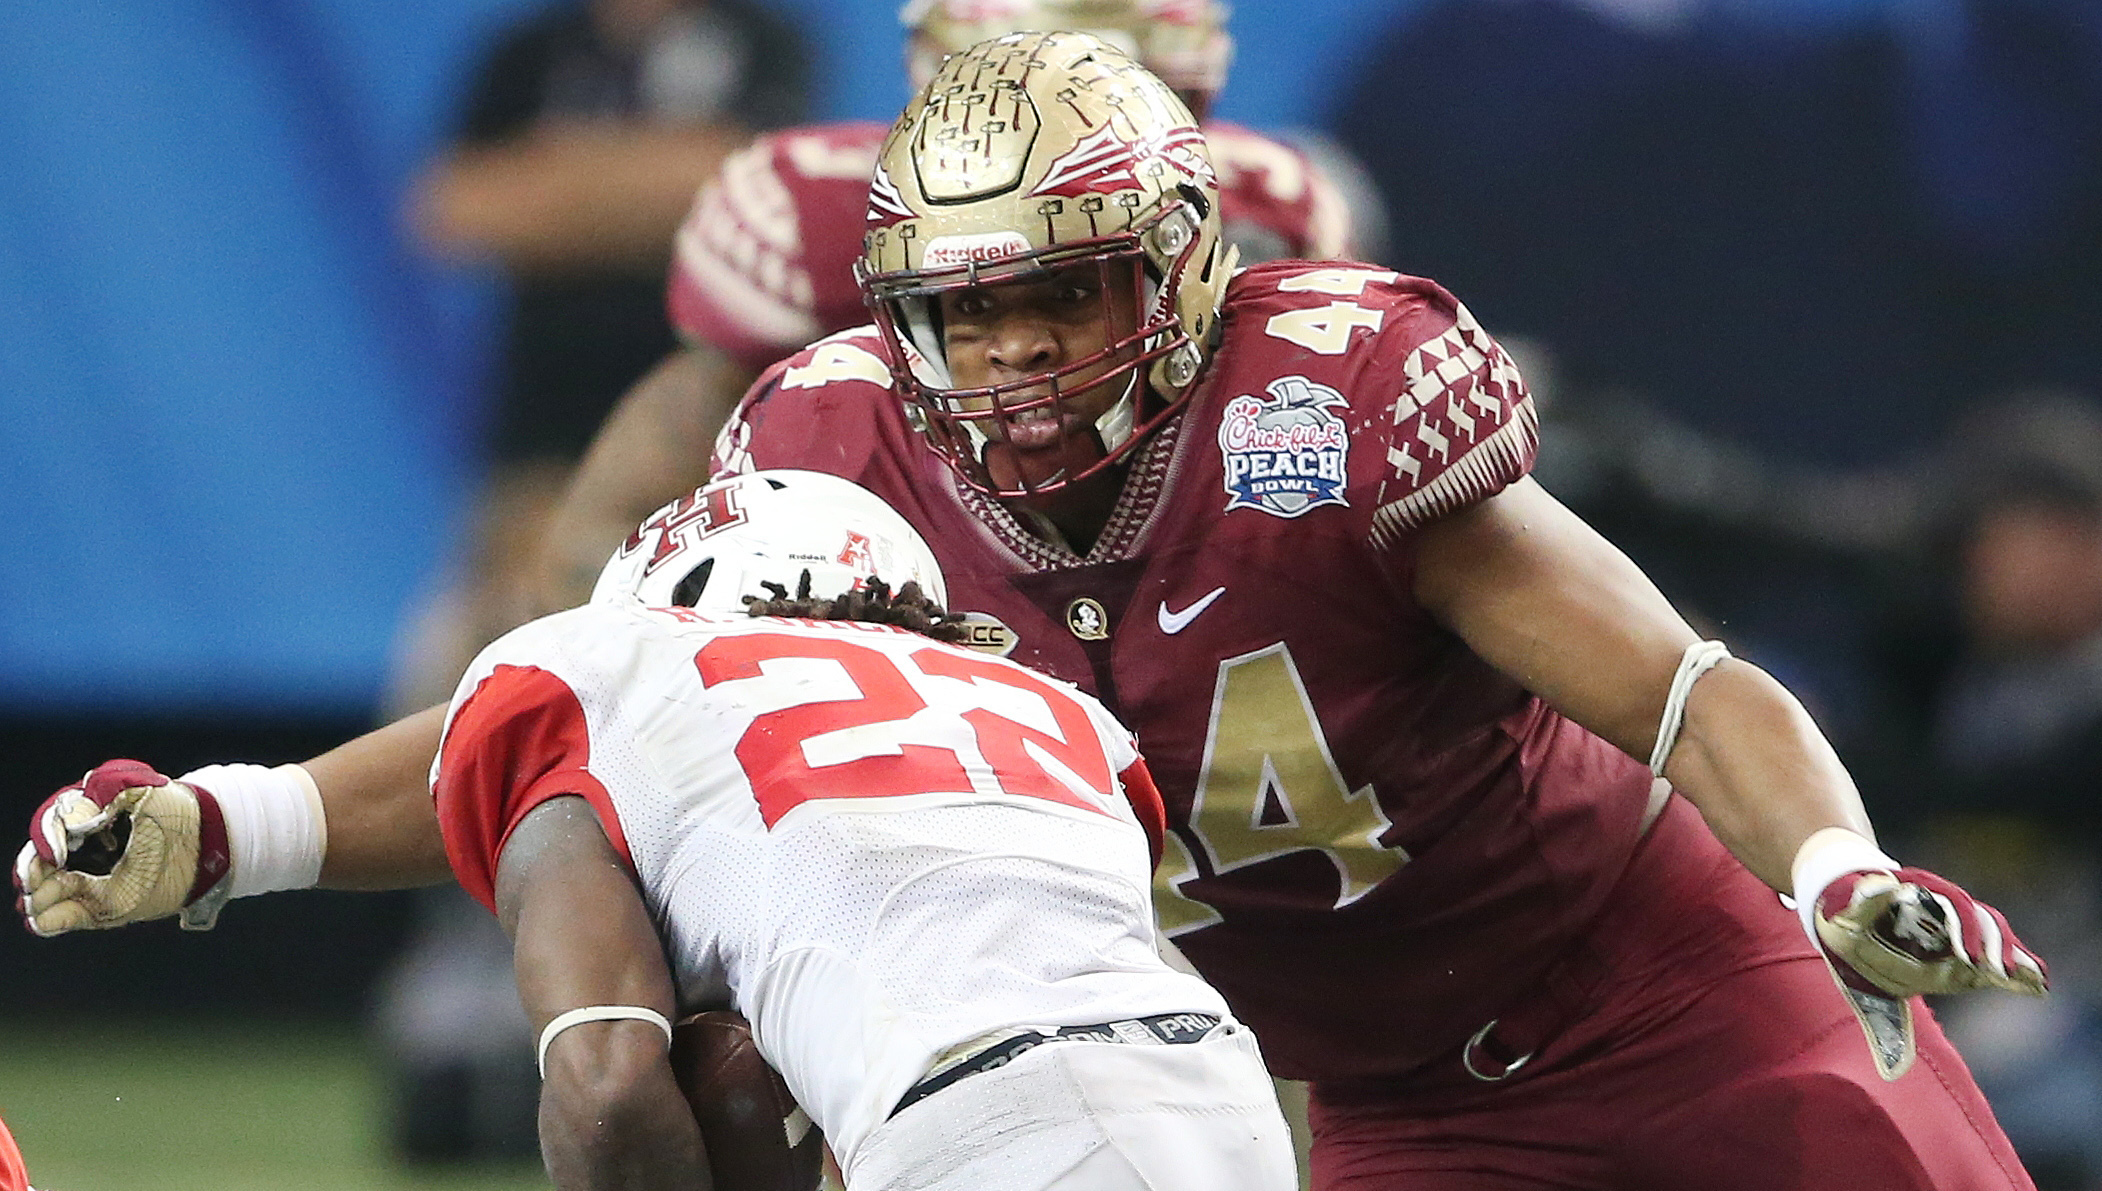 FILE- In this Dec. 31, 2016, file photo, Florida State defensive end DeMarcus Walker (44) prepares to hit Houston running back Ryan Jackson (22) during the second half of the Peach Bowl NCAA college football game, in Atlanta. After having 10.5 sacks last